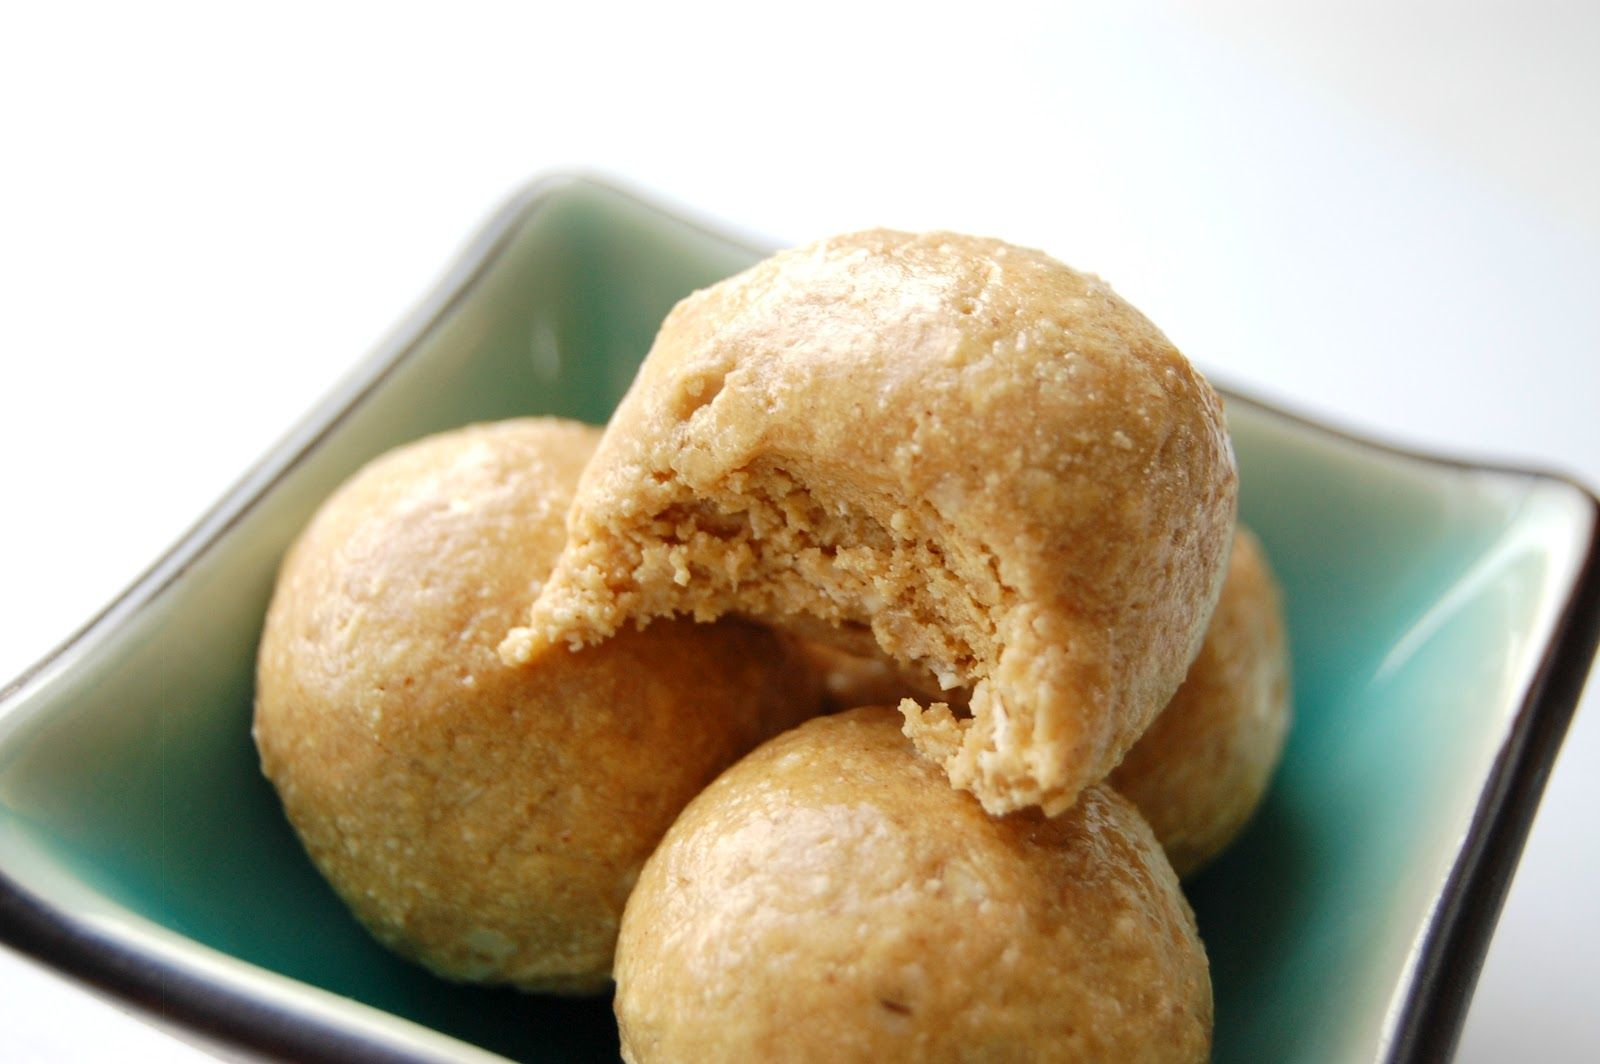 Healthy Peanut Butter Balls 1/2 cup peanut butter 1/2 cup ...